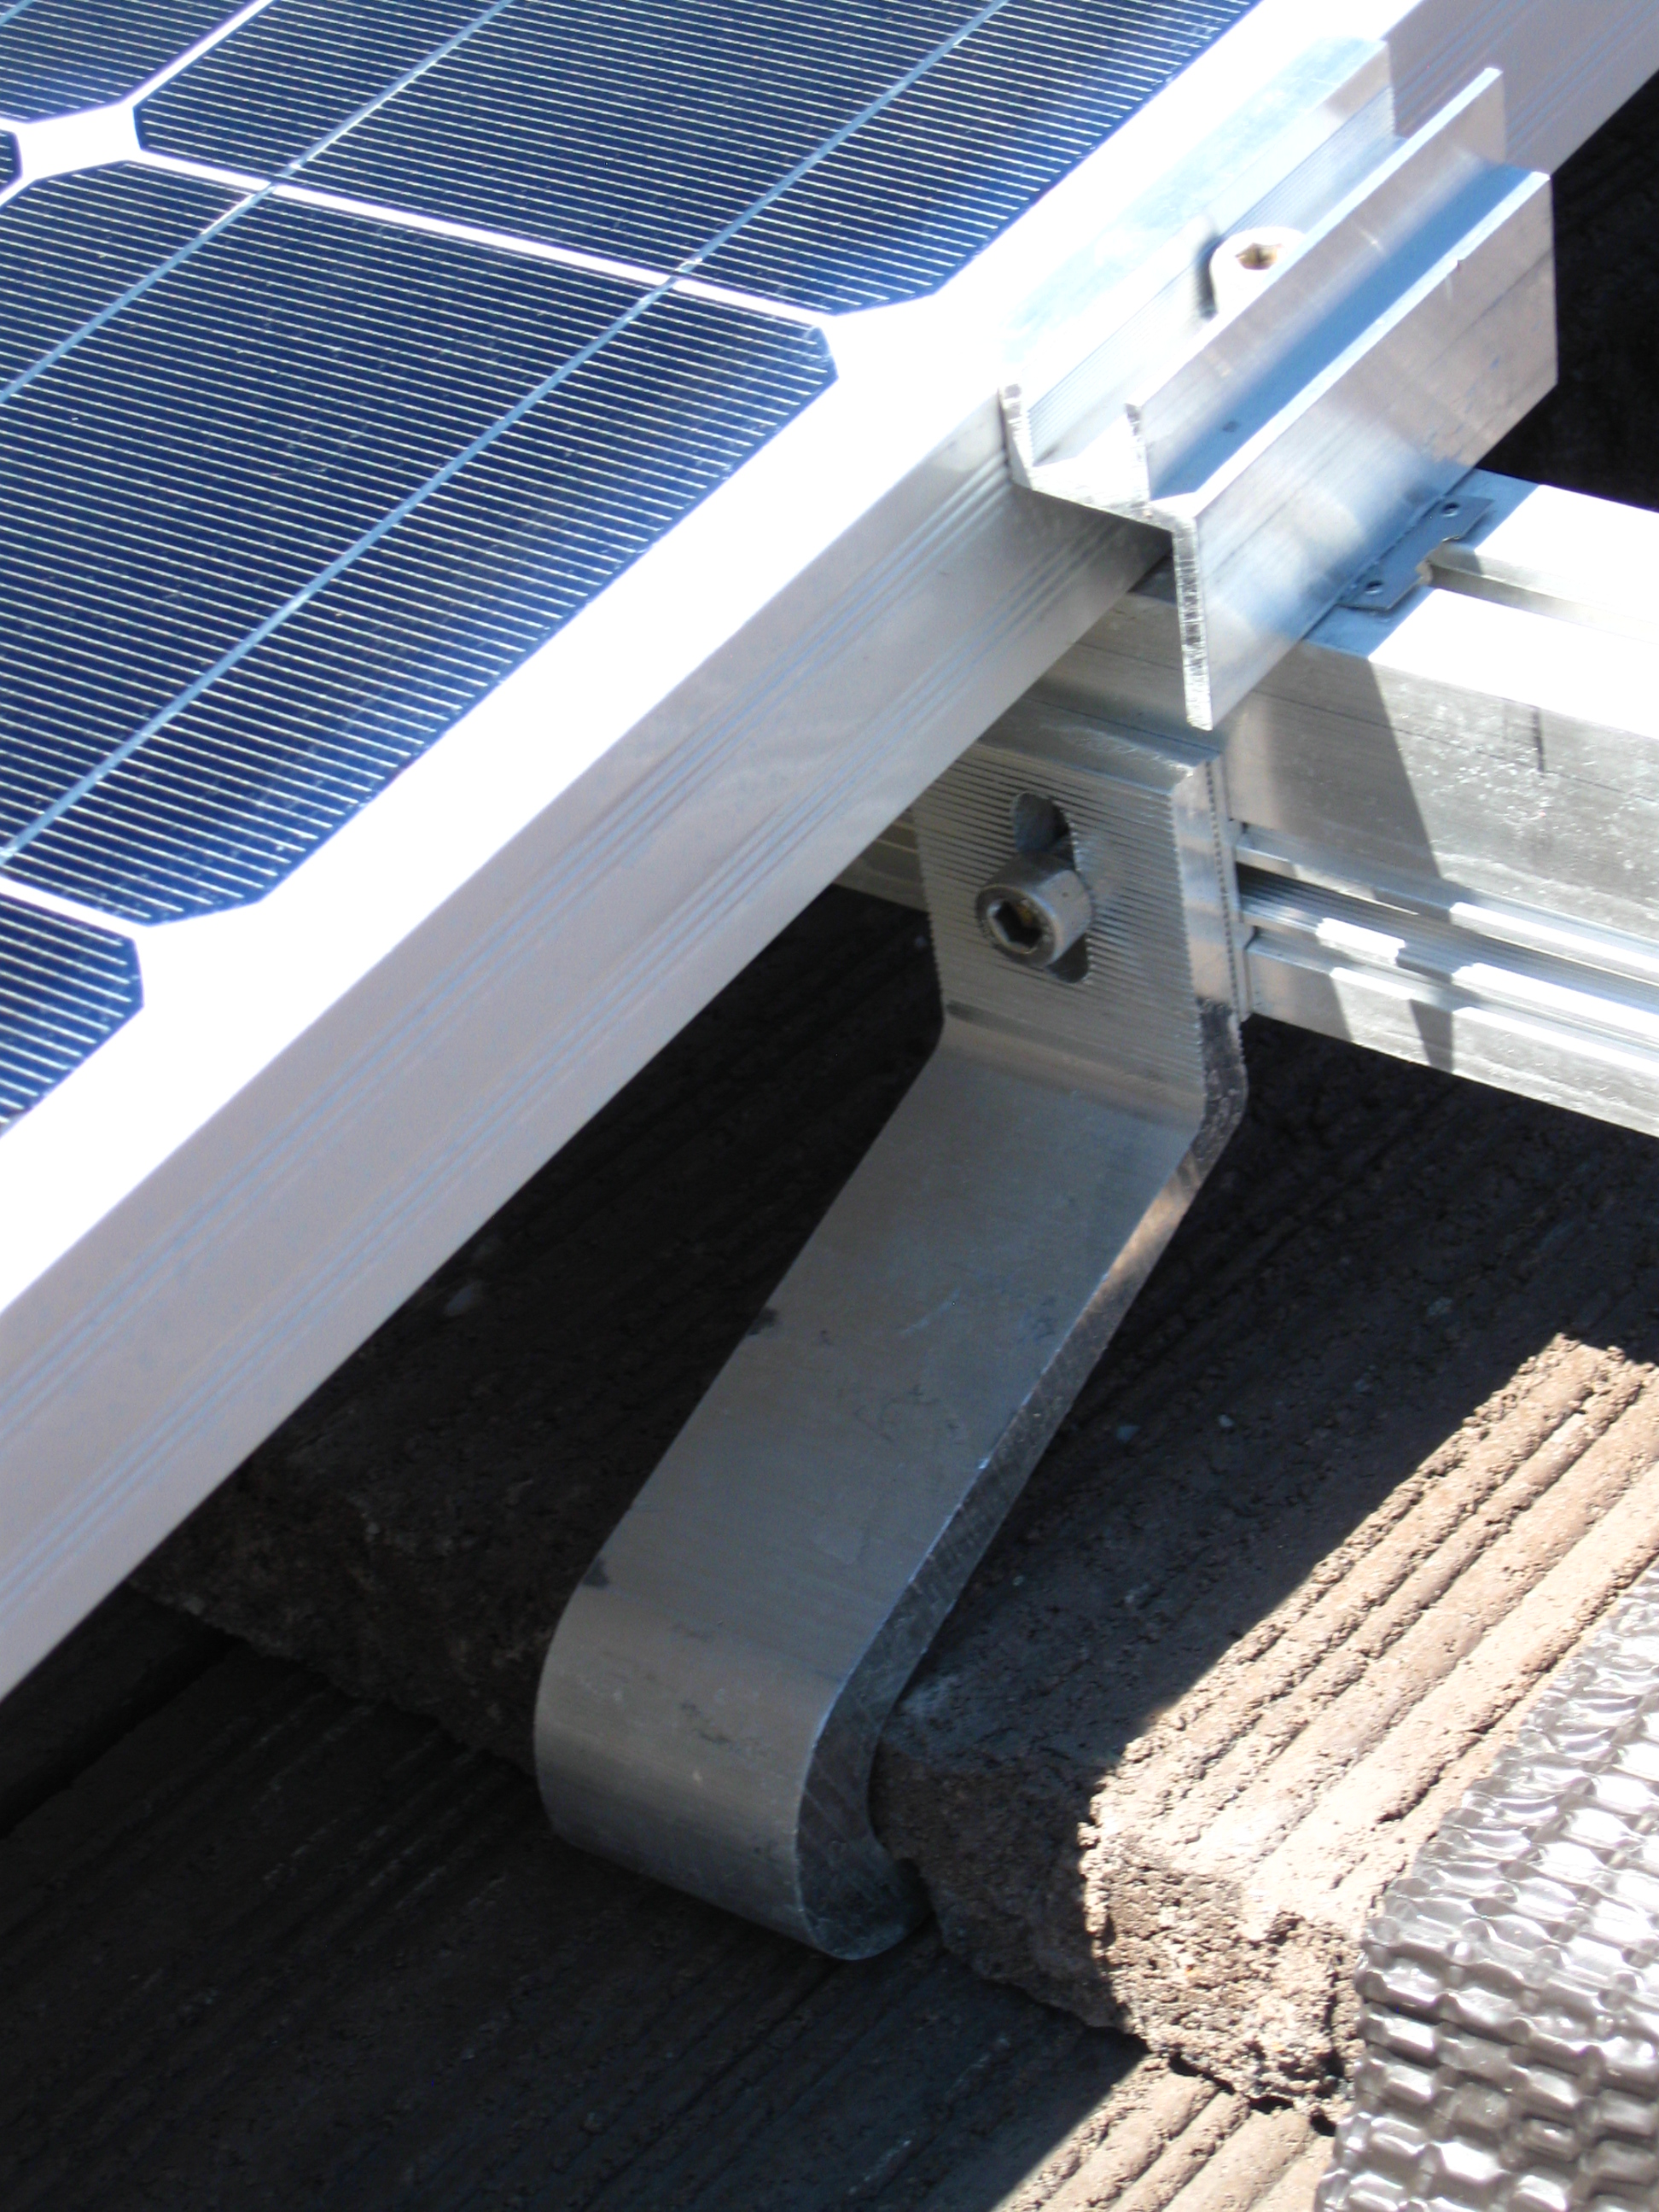 Solar Panel Attached to Racking System and Roof